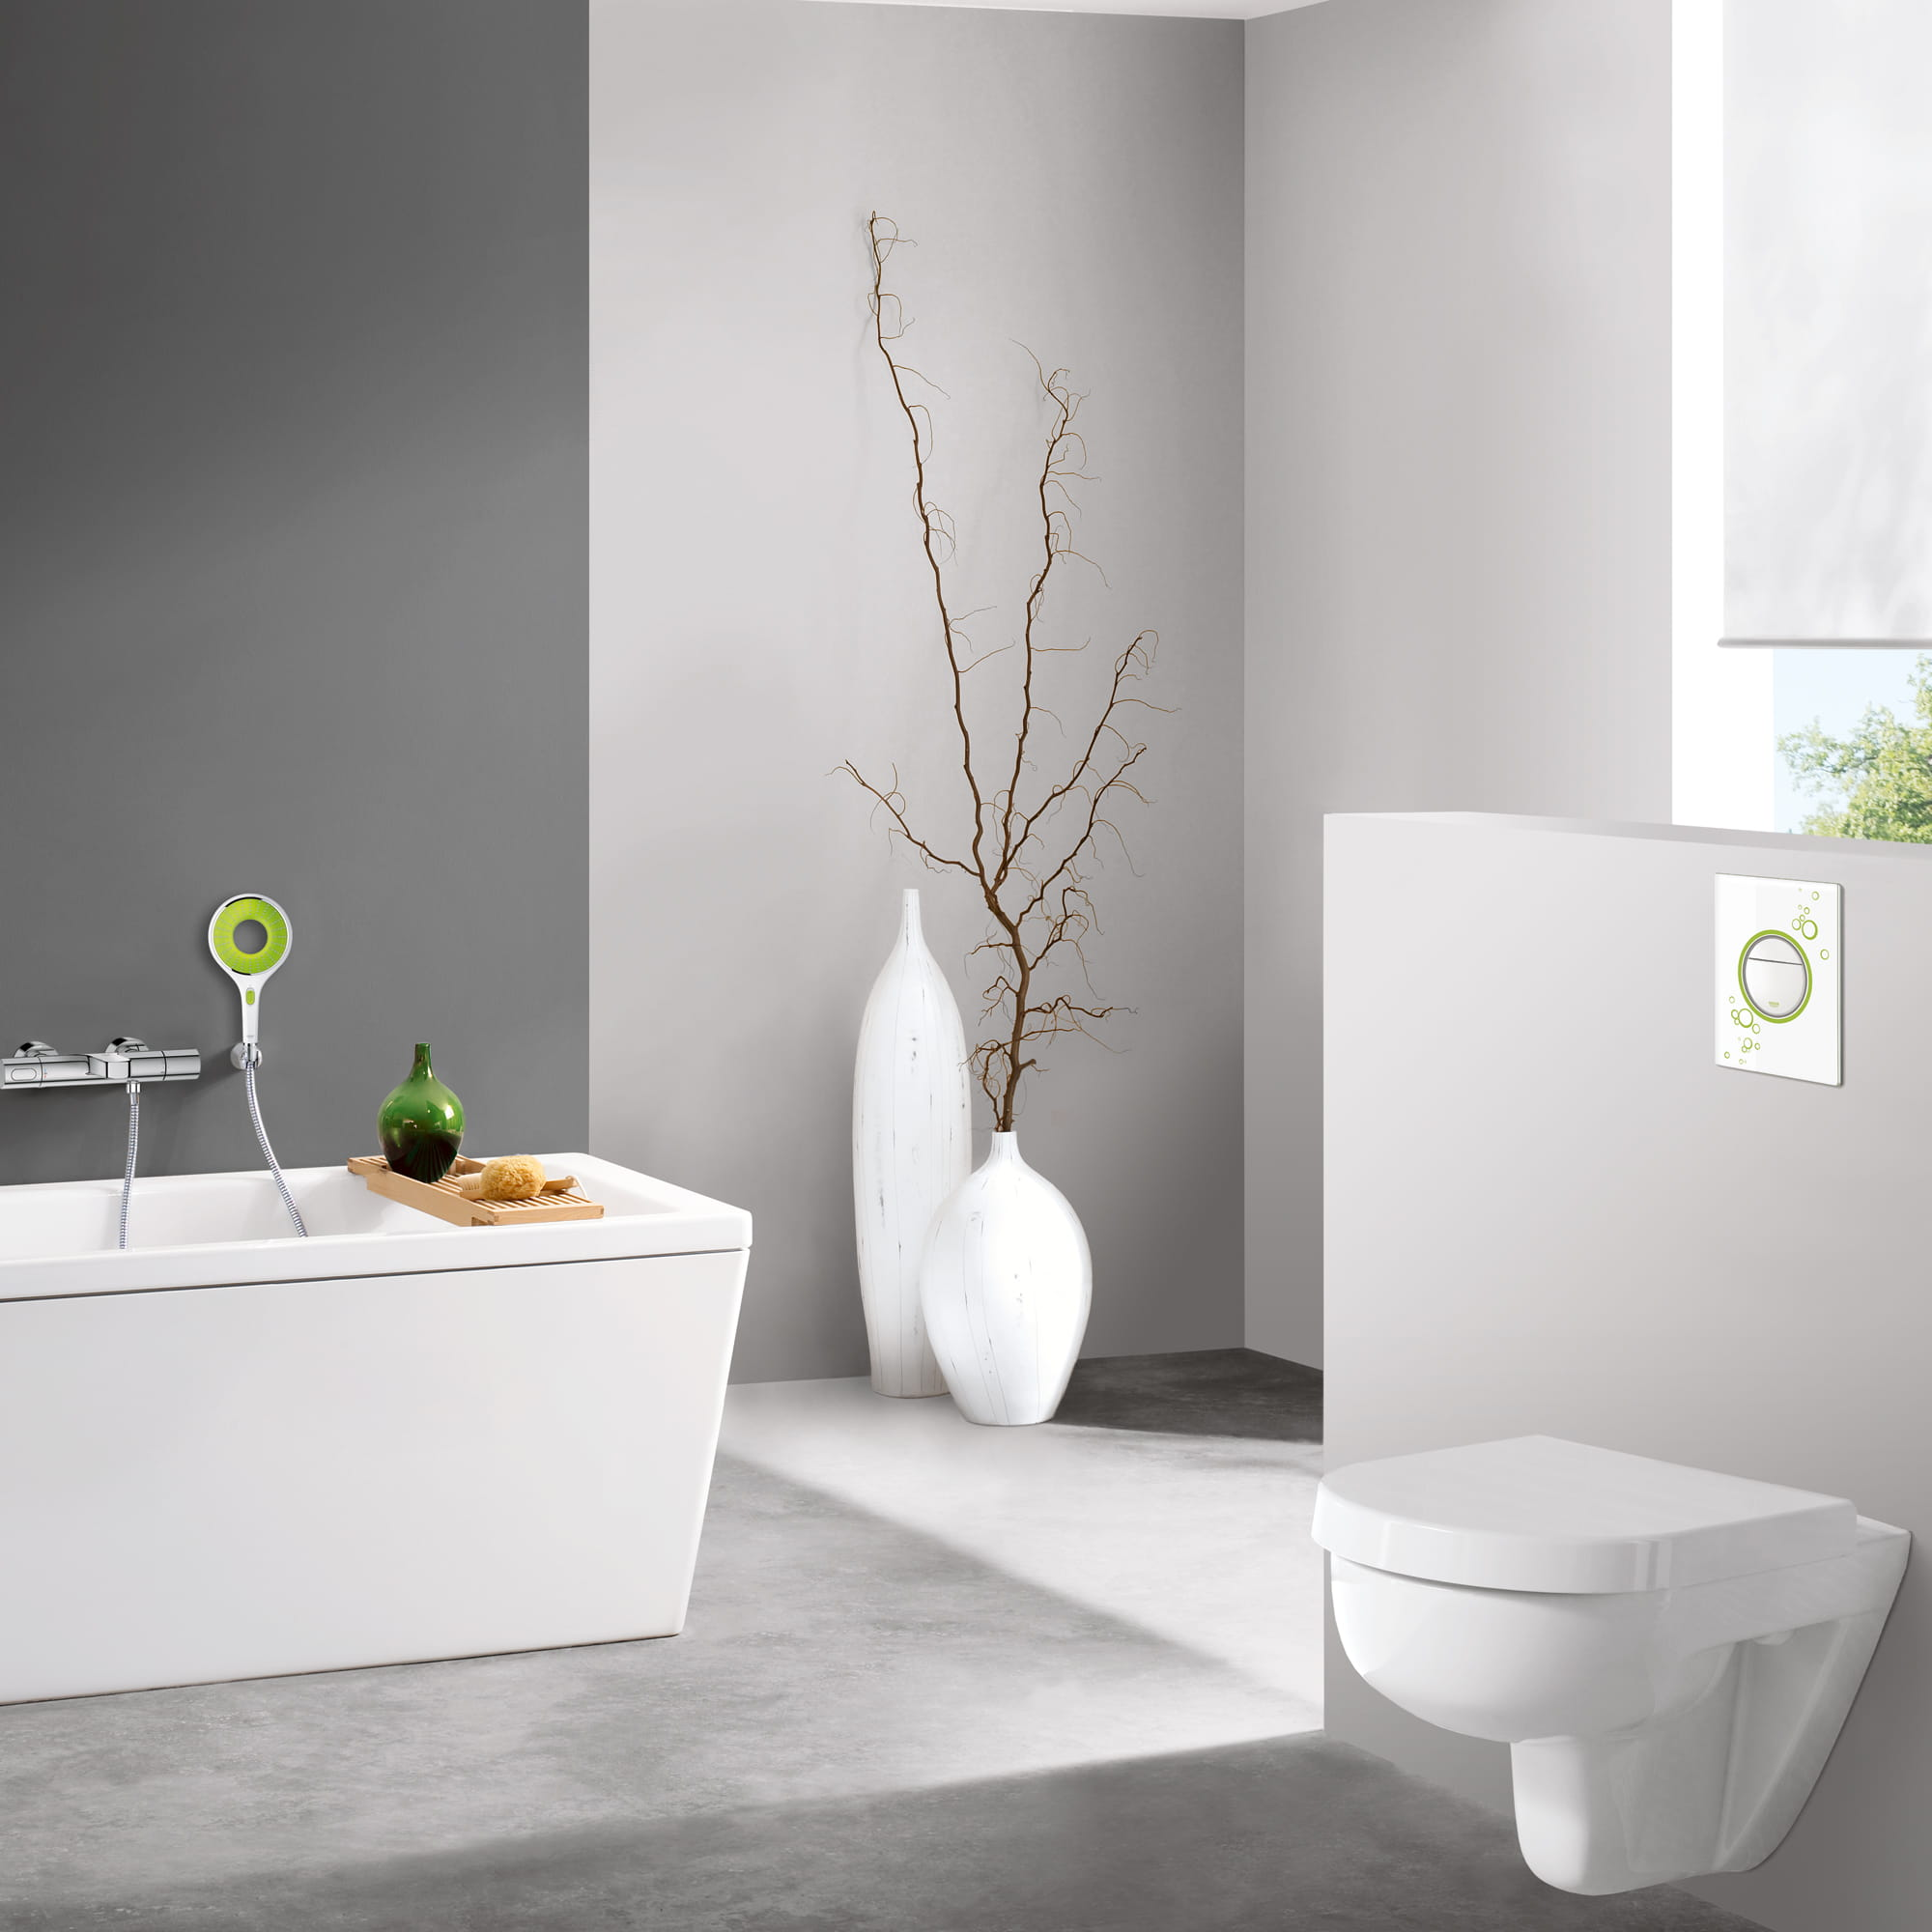 GROHE Toilet with green accents